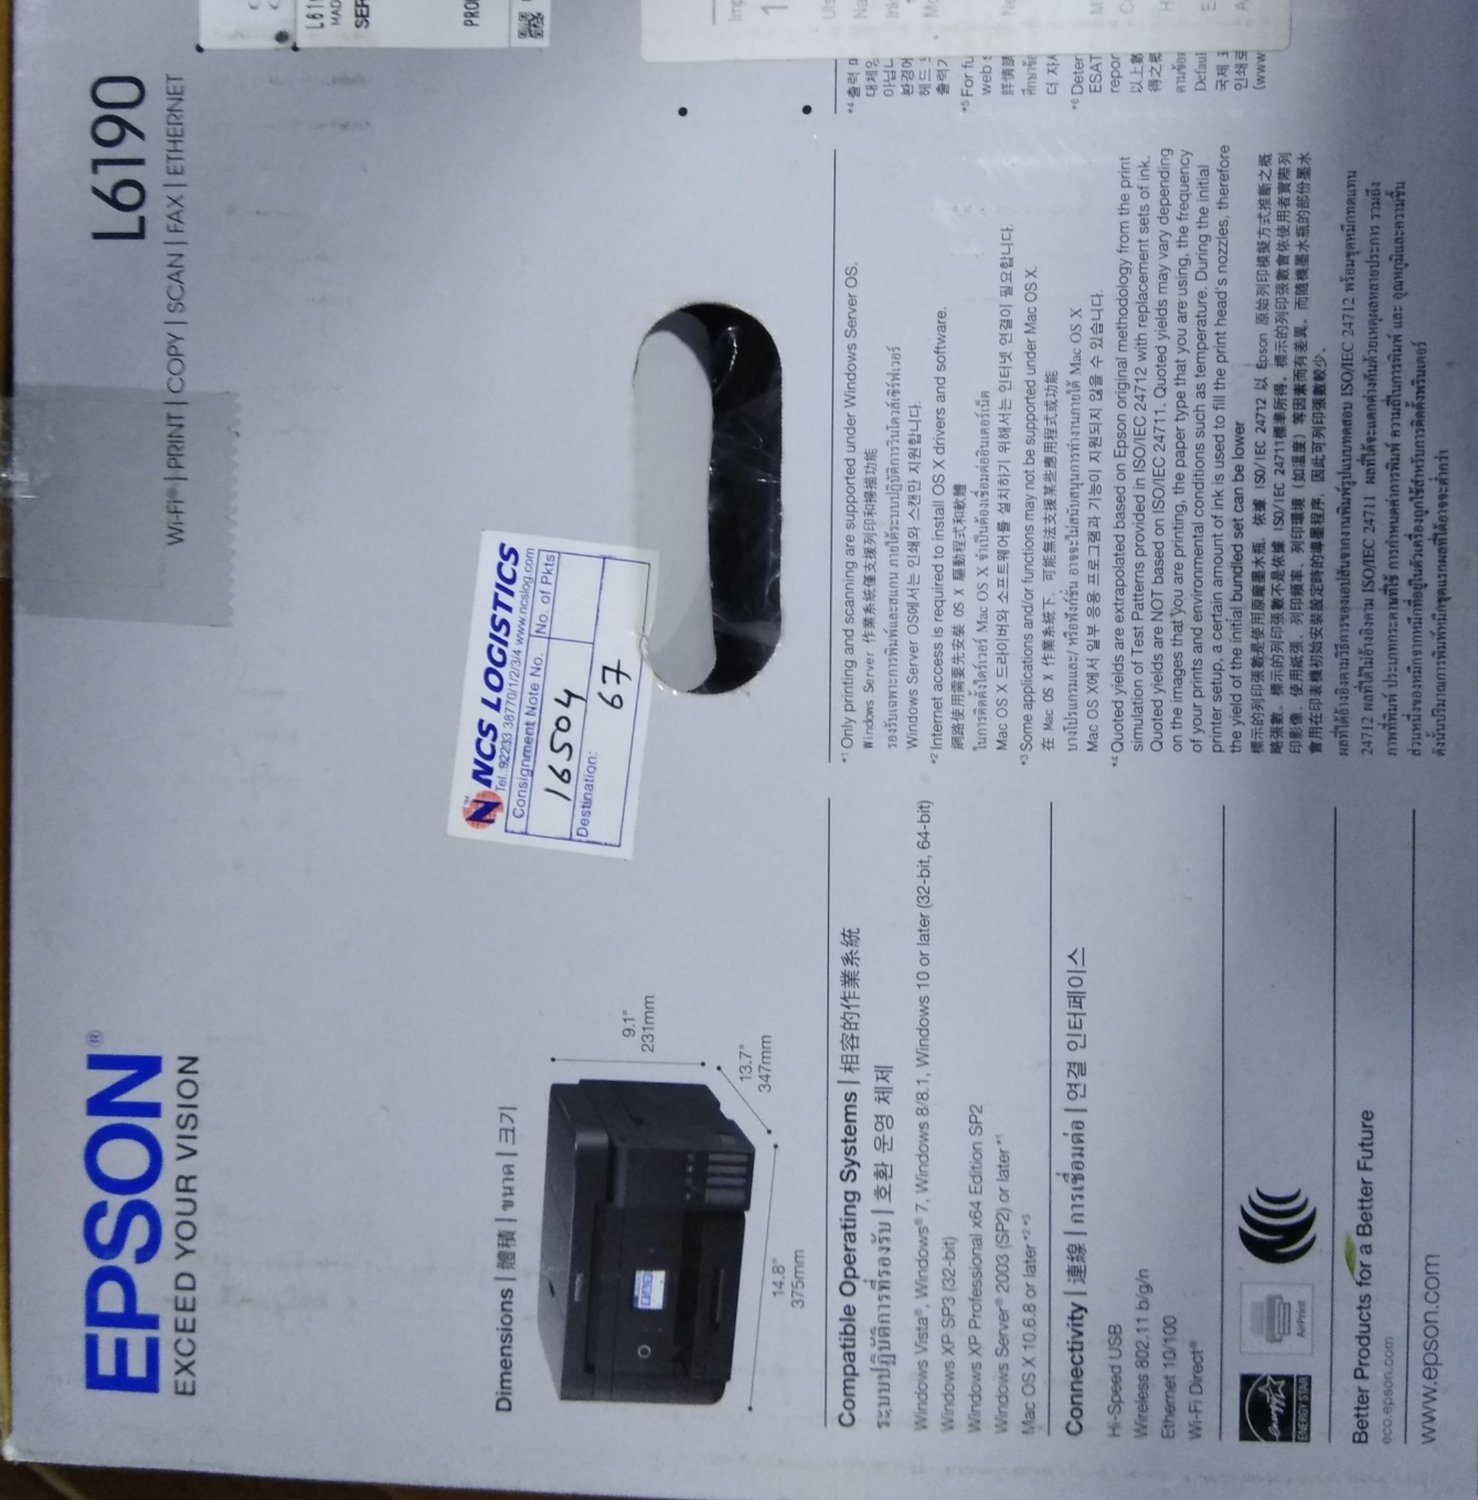 Epson L6190 Wi-Fi Duplex All-in-One Ink Tank Printer with ADF, Rs 20690